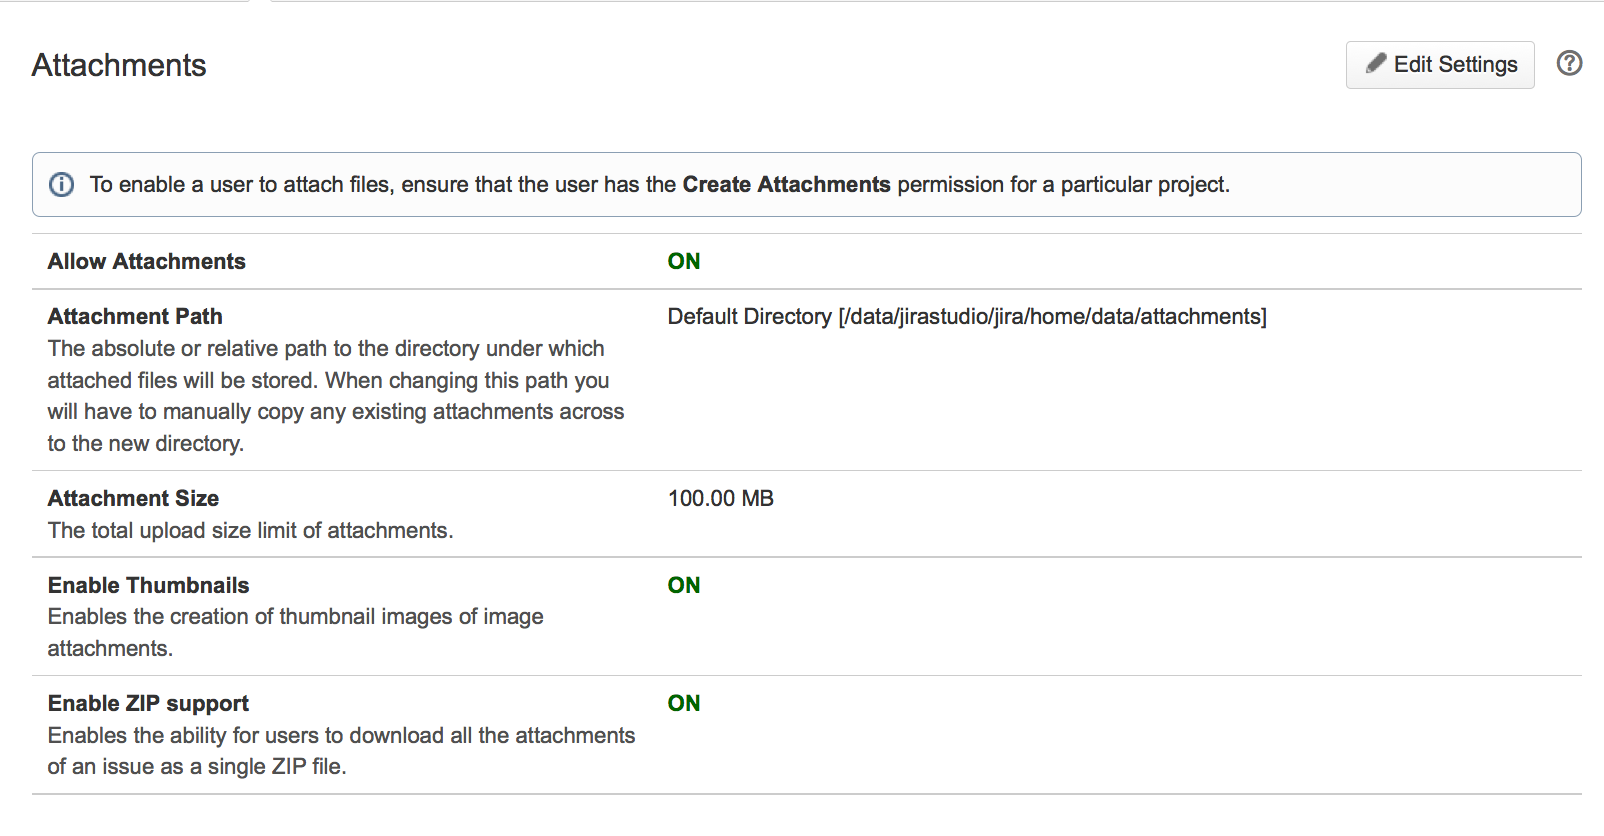 Configuring file attachments - Atlassian Documentation